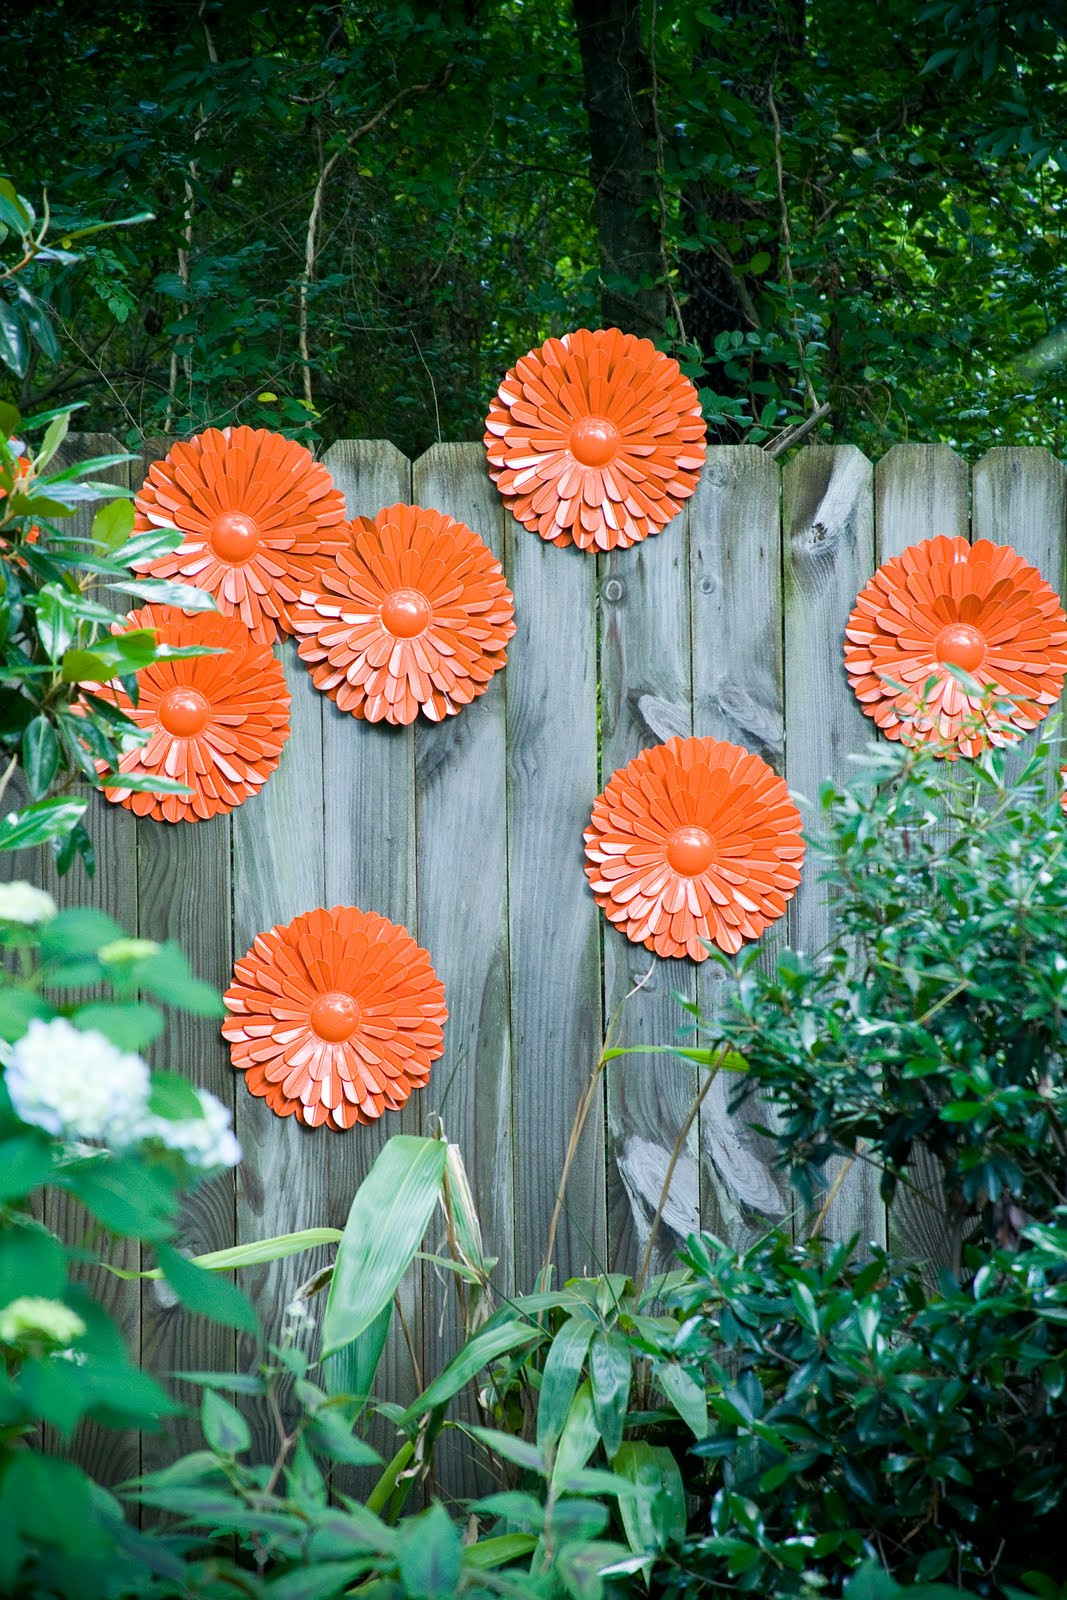 Best ideas about DIY Flower Garden . Save or Pin 16 Amazing DIY Ideas to Spruce Up Your Garden Now.